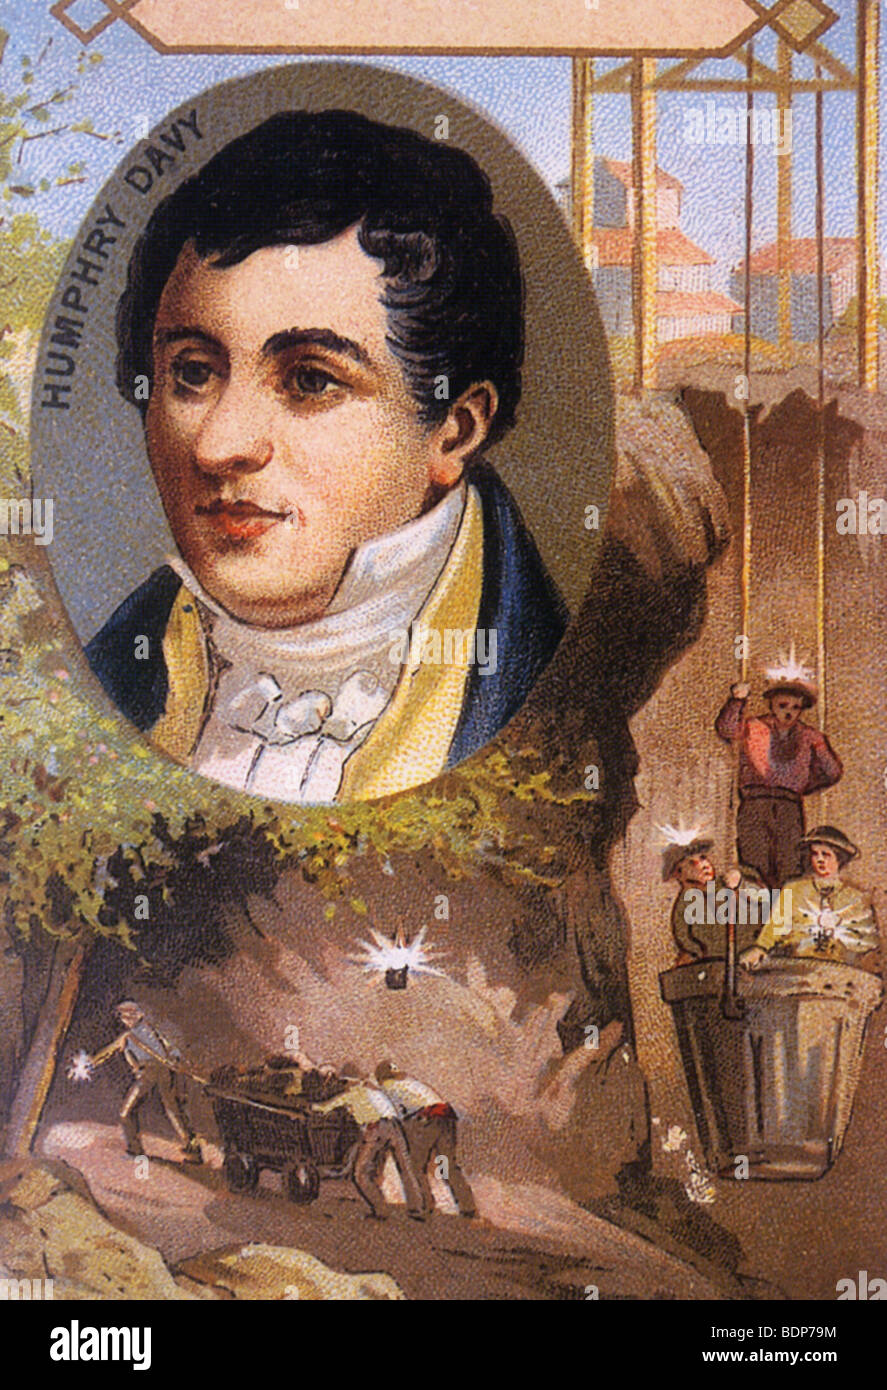 SIR HUMPHREY DAVY  English inventor of the mining safety lamp named after him Stock Photo